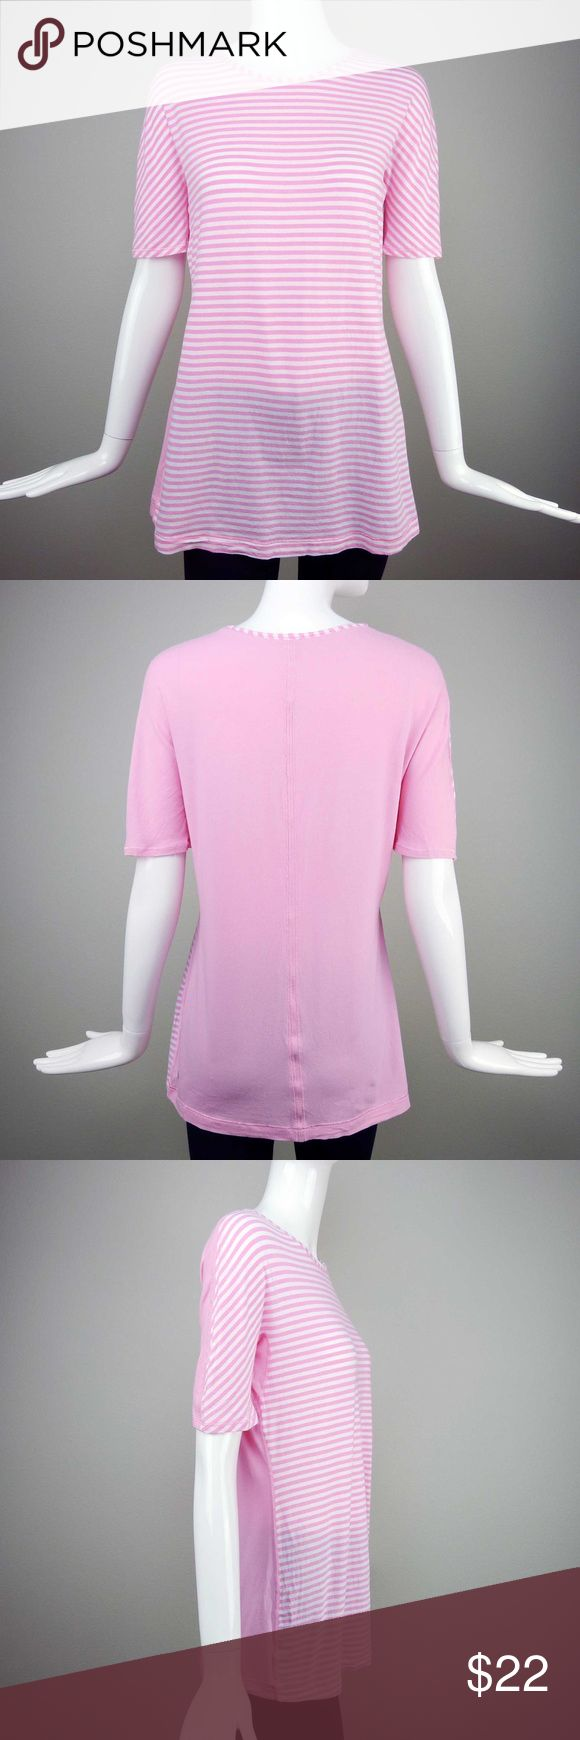 Lululemon Love Tee Shell Pink Size 8 Up for your consideration is a Lululemon Love Tee, Shell Pink / White Stripes Combination, Size 8, Very Good Used Condition. The front has the striped pattern, and the back is plain. It's super soft and feels great on the skin. The fit is body skimming so it's very forgiving. This top is perfect for layering. Great for yoga and other studio activities. No trades, no PayPal. Price firm unless bundled. lululemon athletica Tops Tees - Short Sleeve